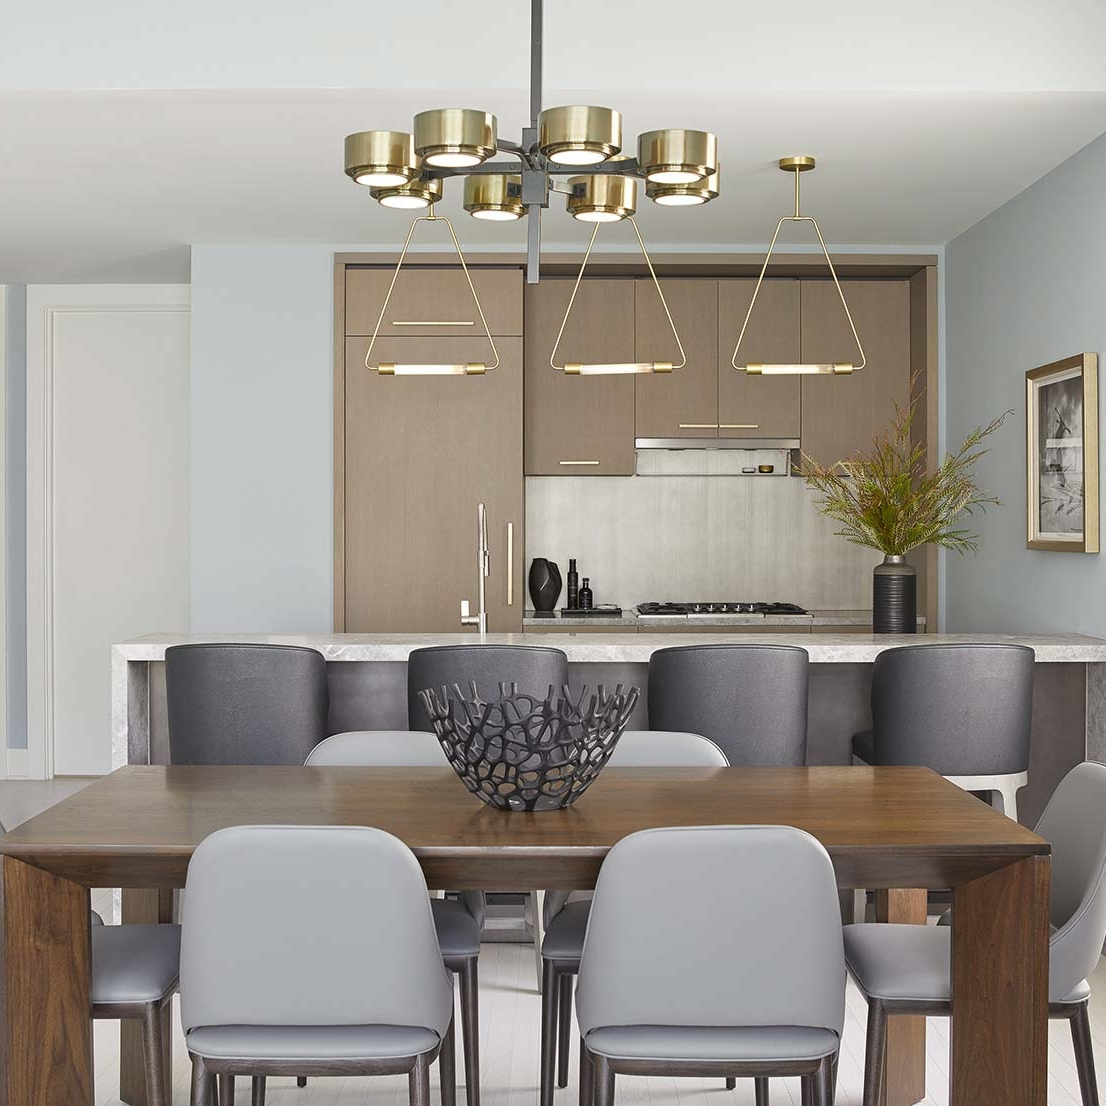 Open kitchen and dining with statement metal lights and art in a brass frame in a NYC interior design project